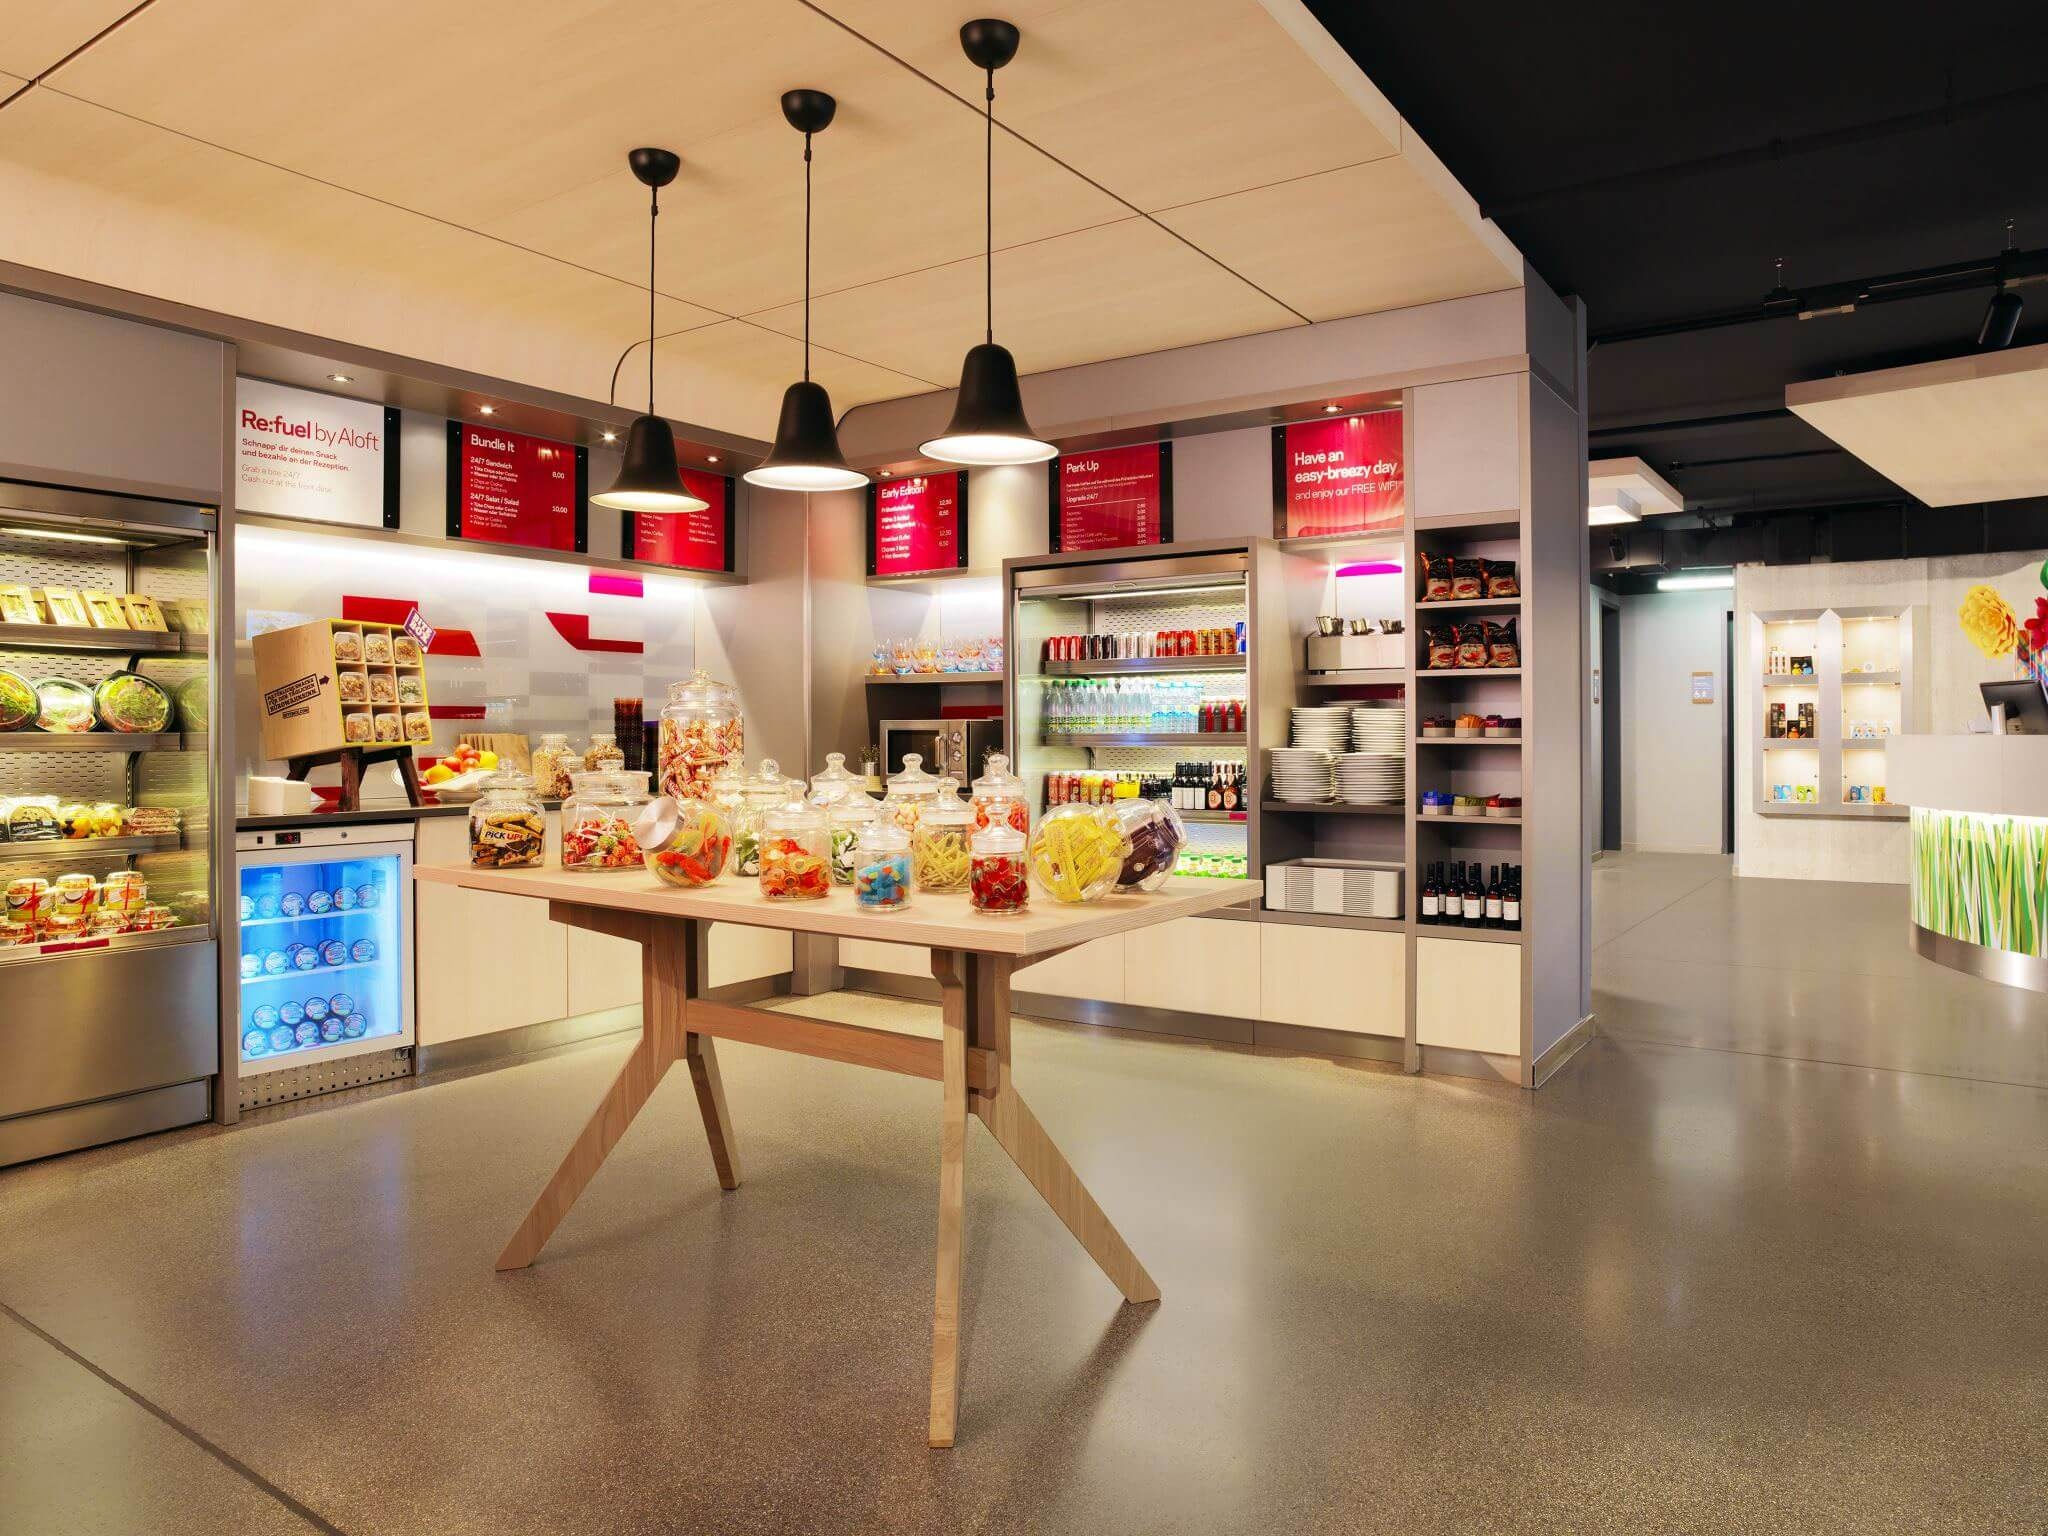 Aloft Stuttgart re:fuel grab & go pantry